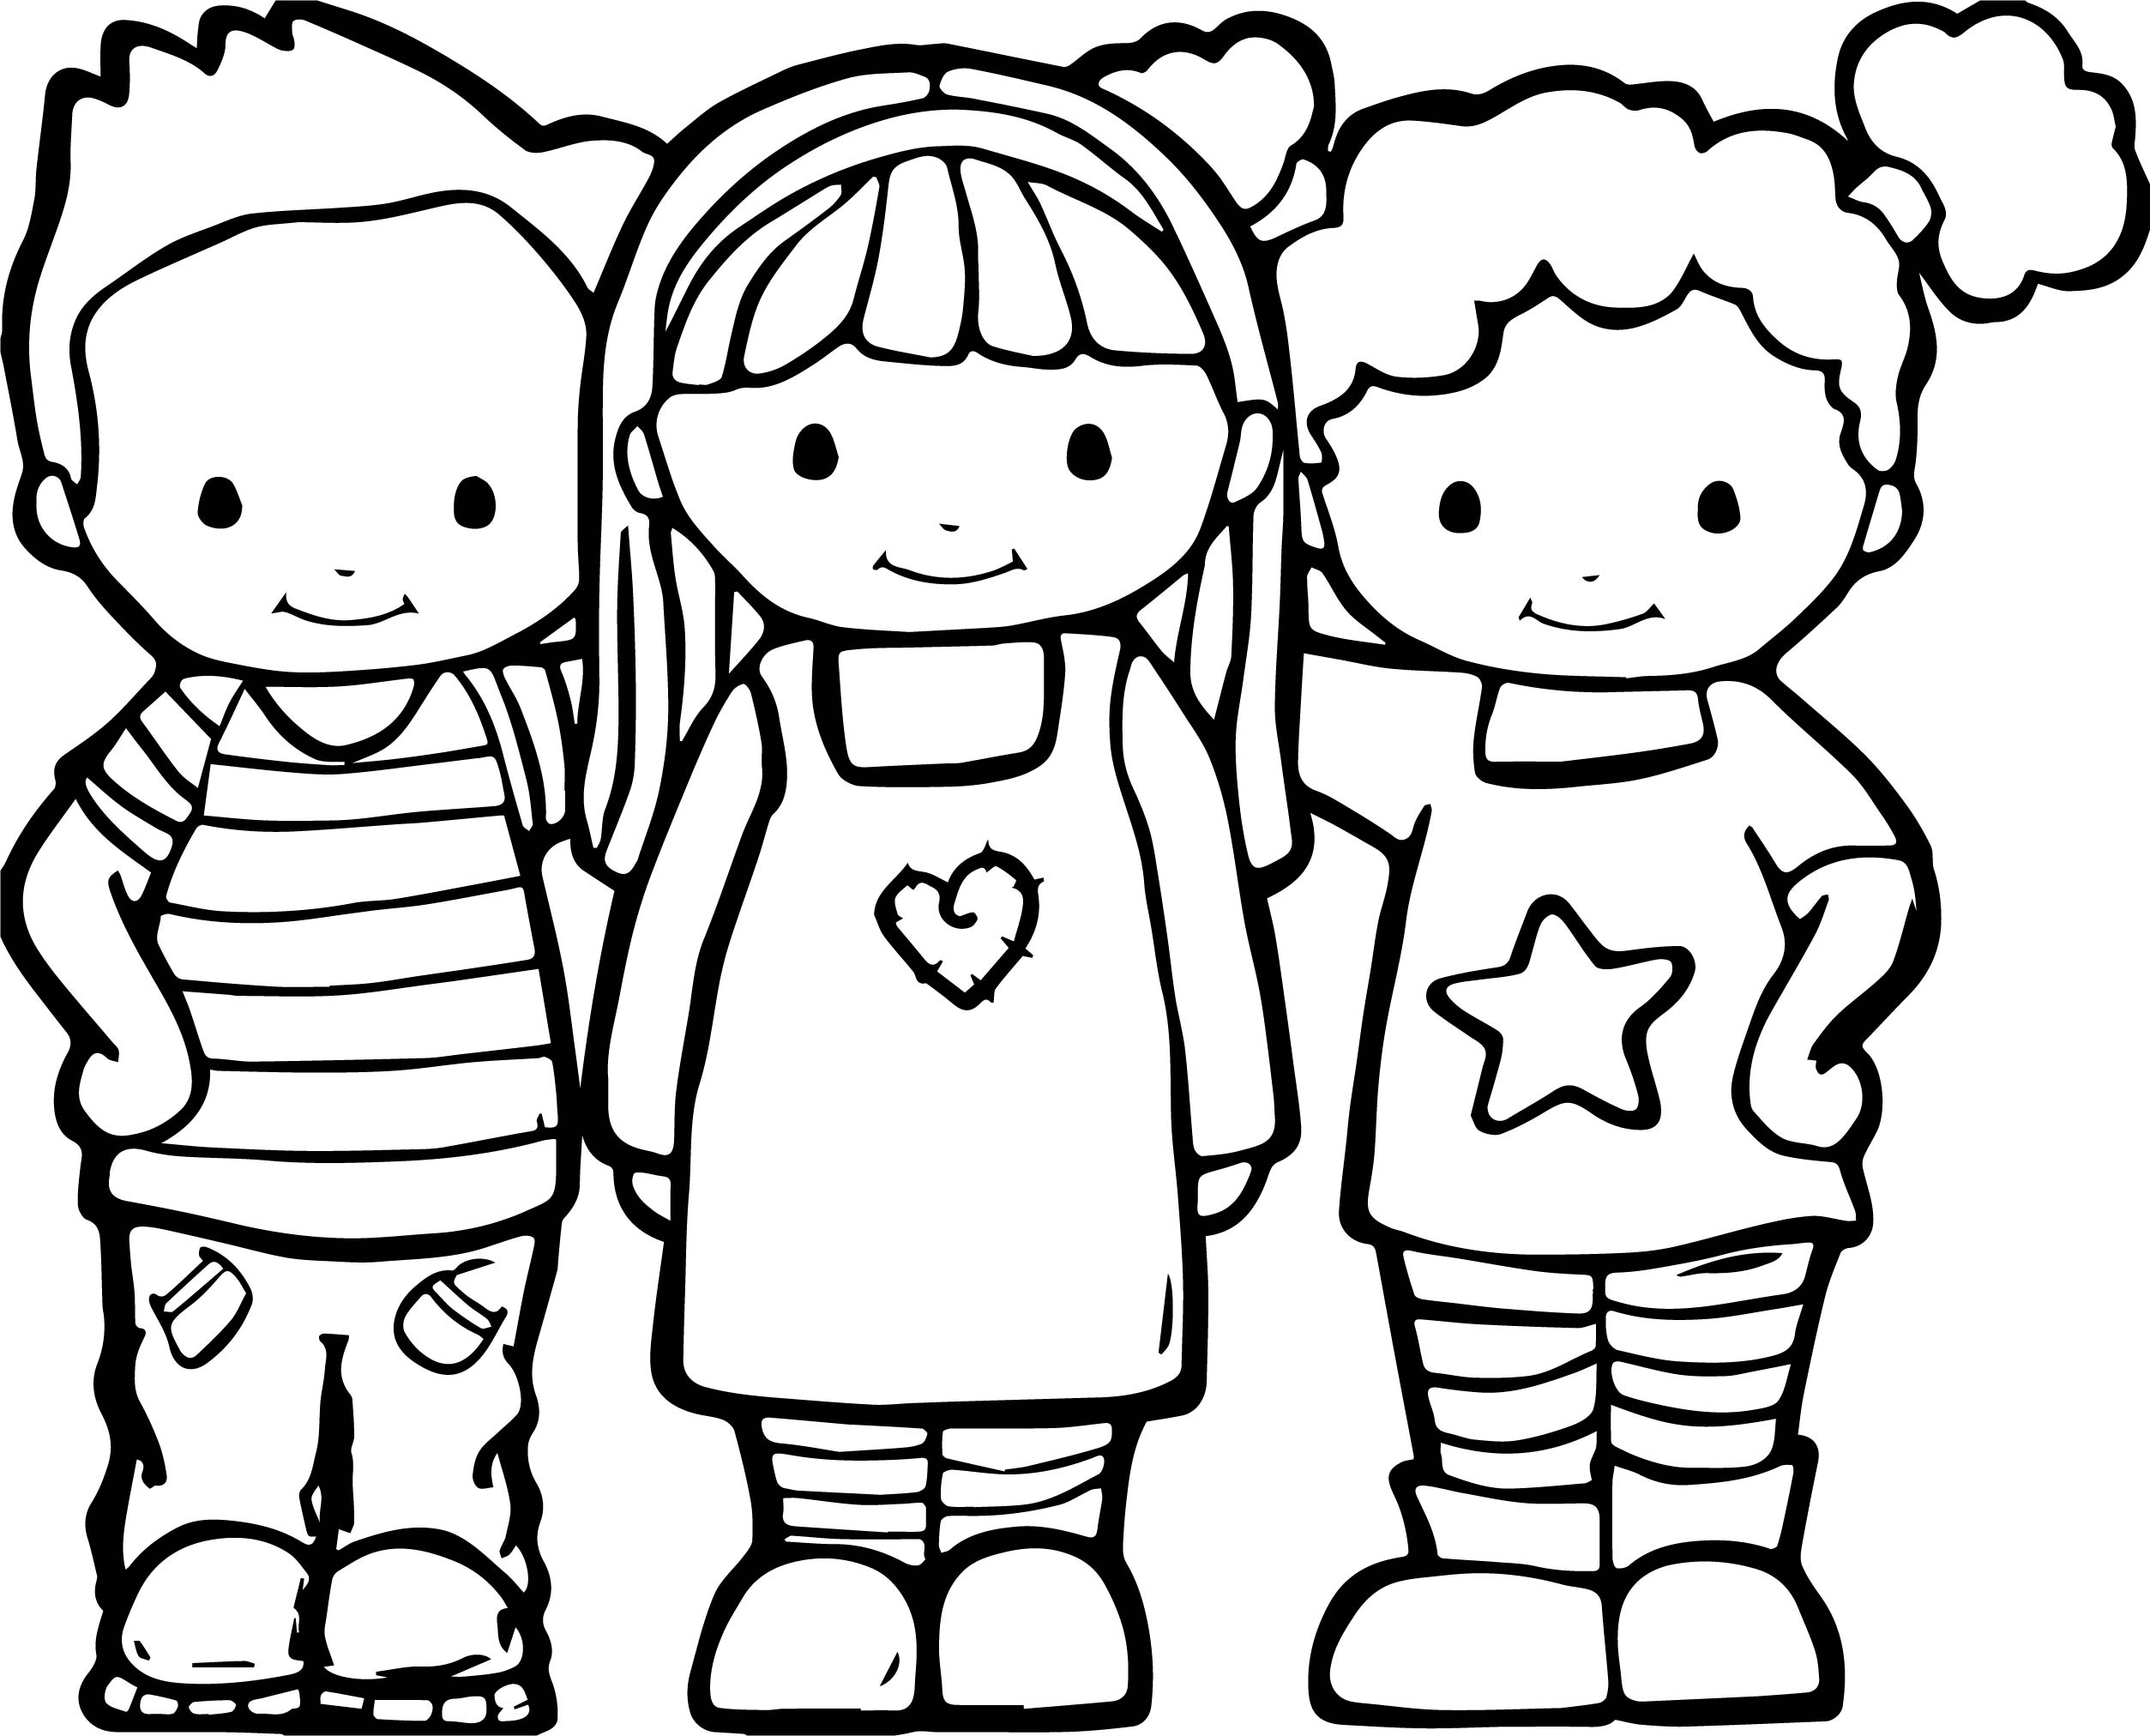 Best Friends Color Coloring Pages Wecoloringpage